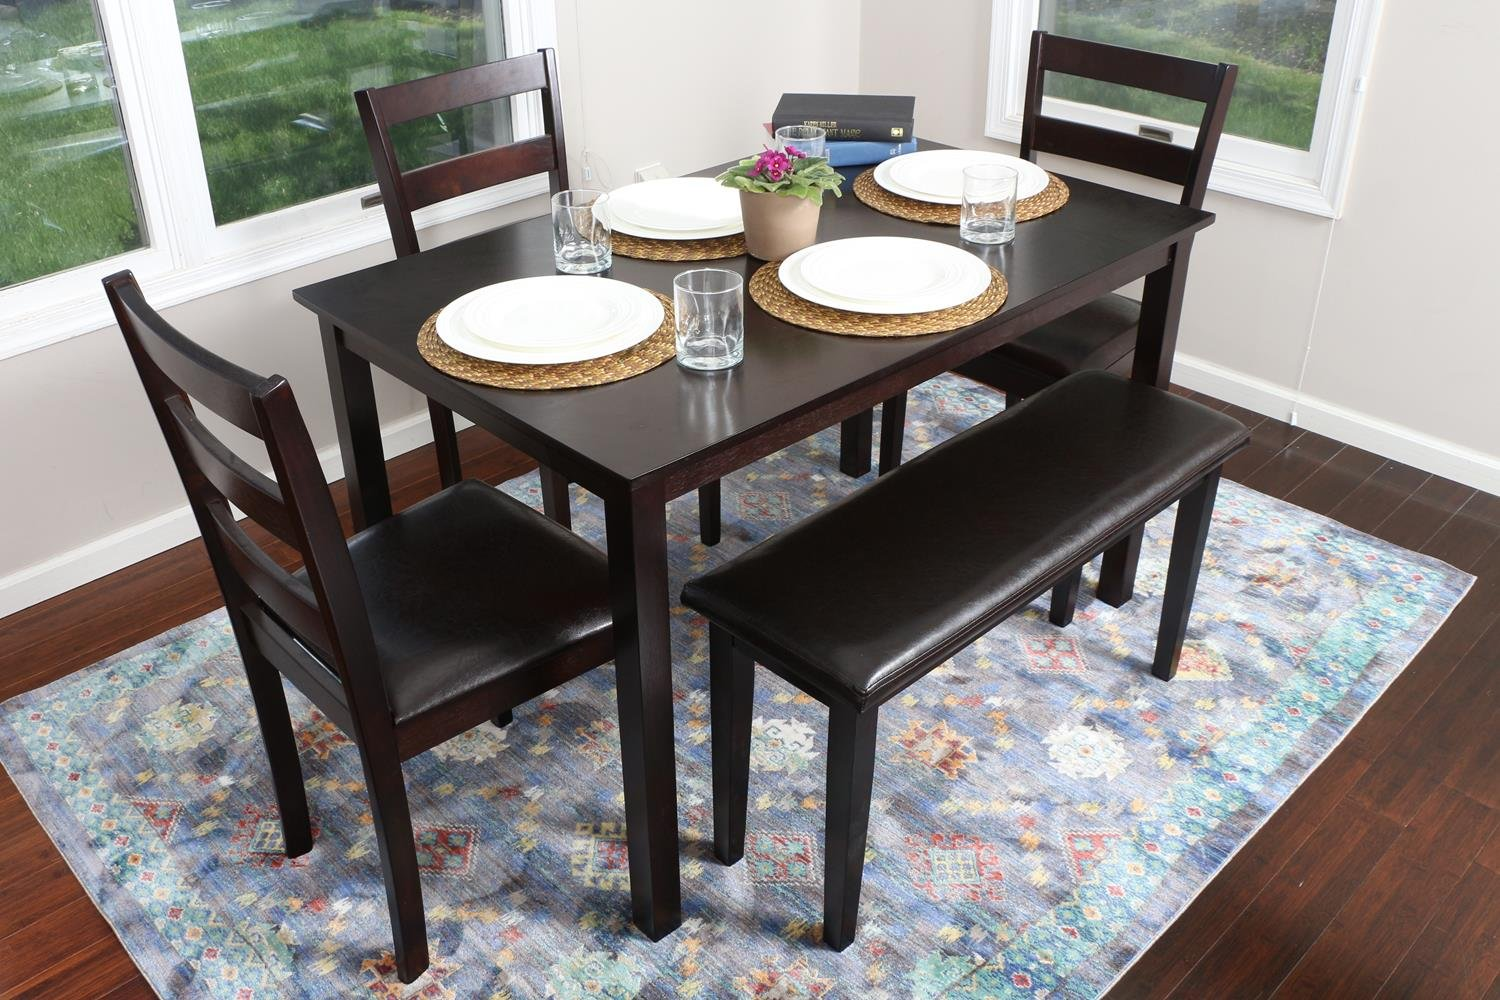 Life Home 4 Person 5 Piece Kitchen Dining Table Set 1 Table 3 Leather Chairs 1 Bench Espresso Brown J150232espresso